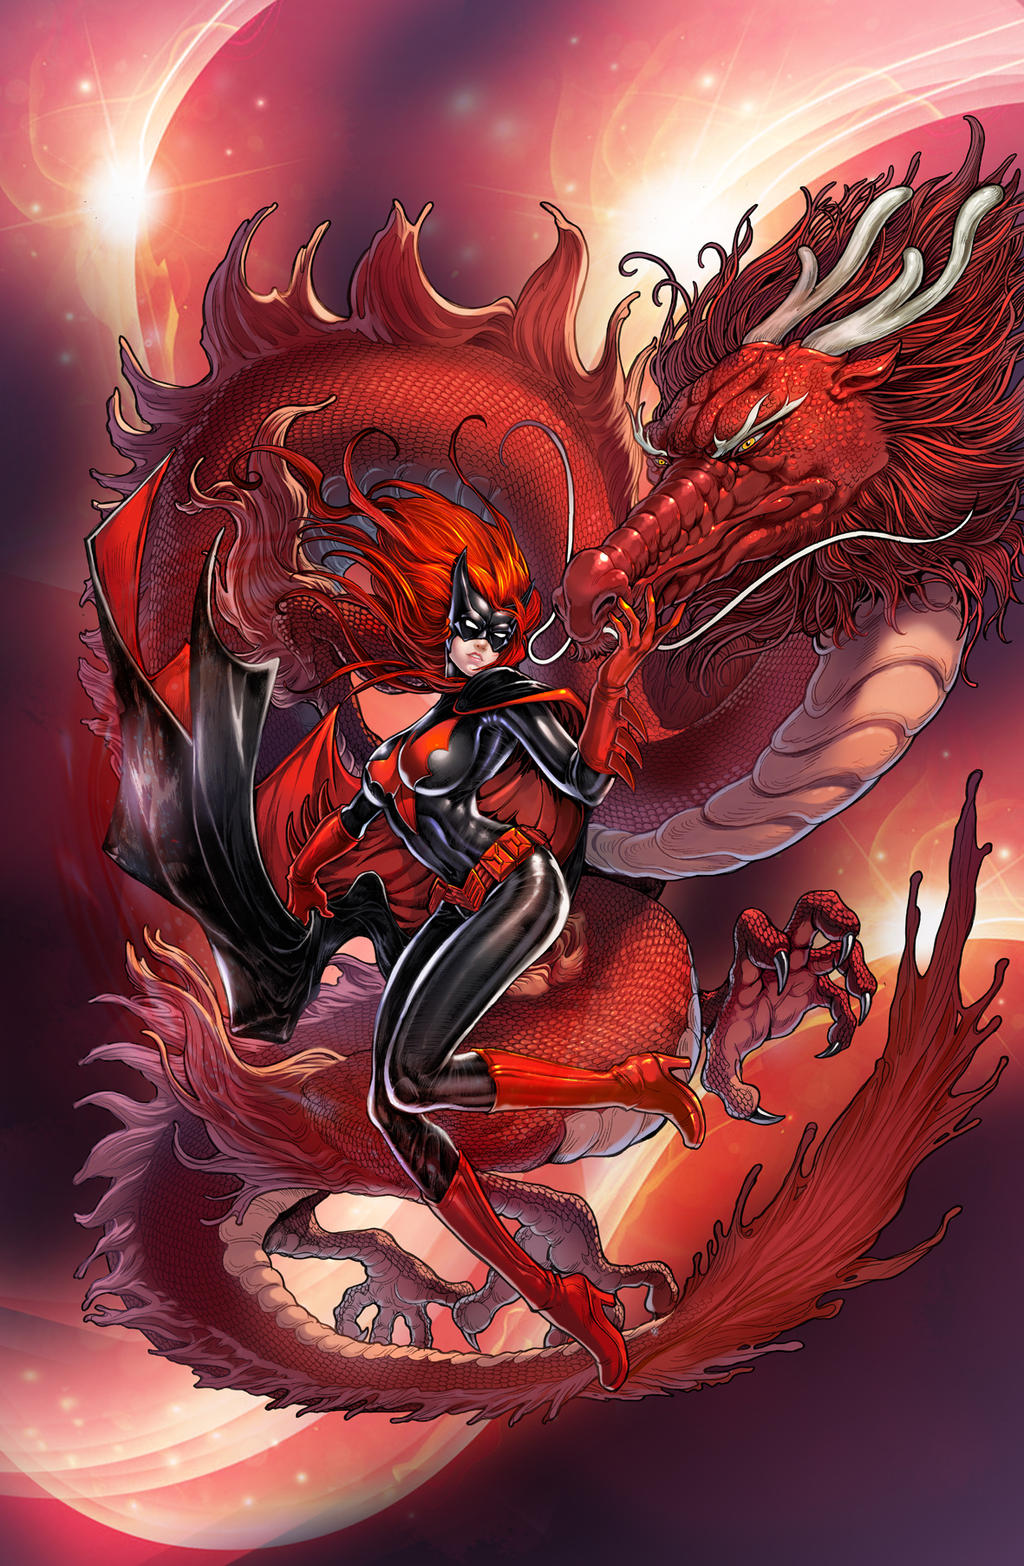 Batwoman with red dragon by daxiong on DeviantArt